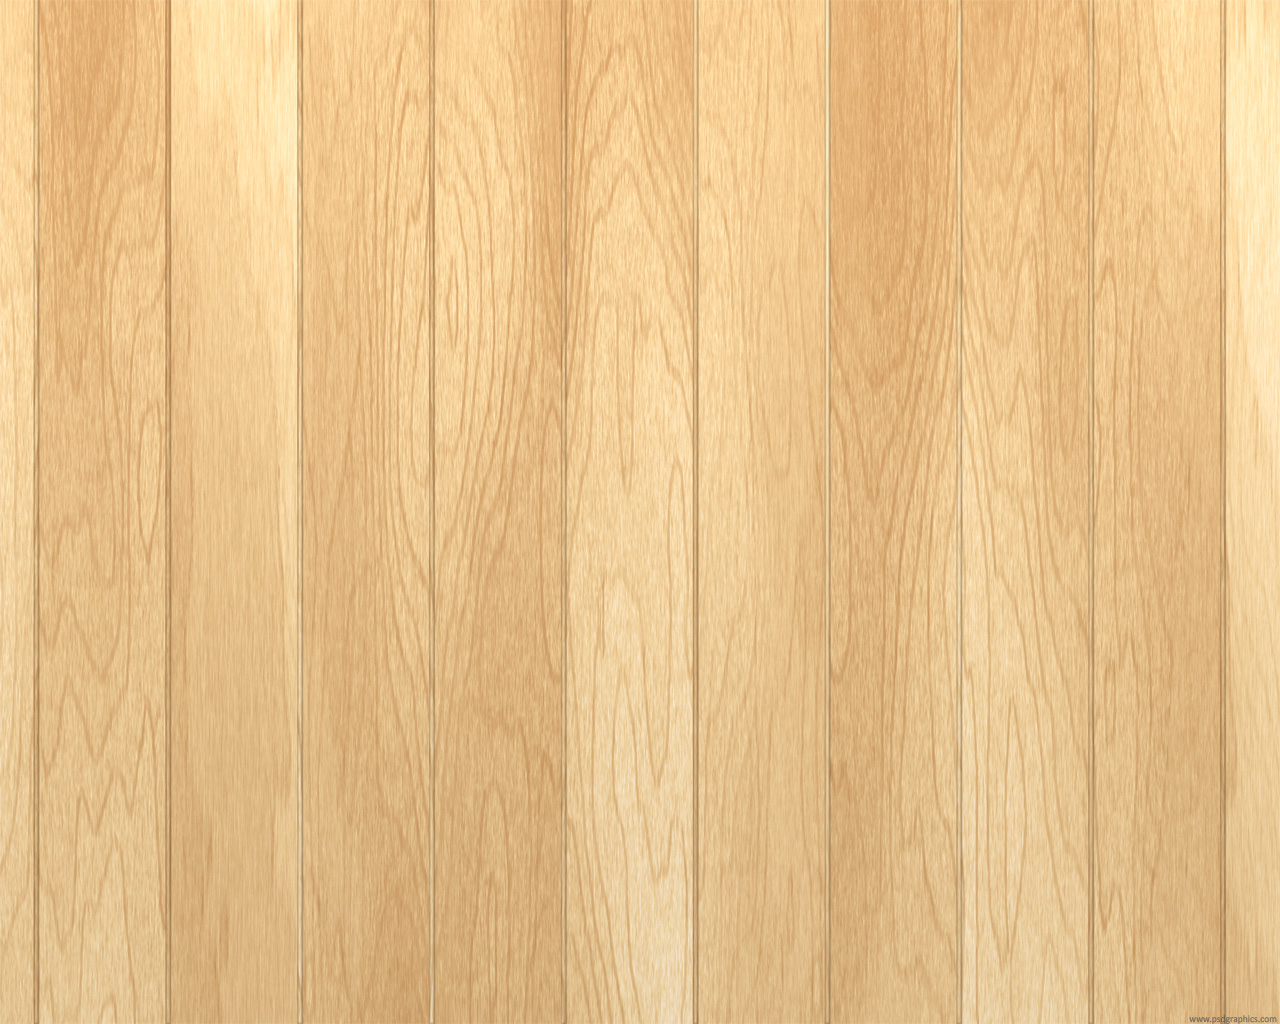 Light Wood Floor Texture 1280 x 1024 · 383 kB · jpeg